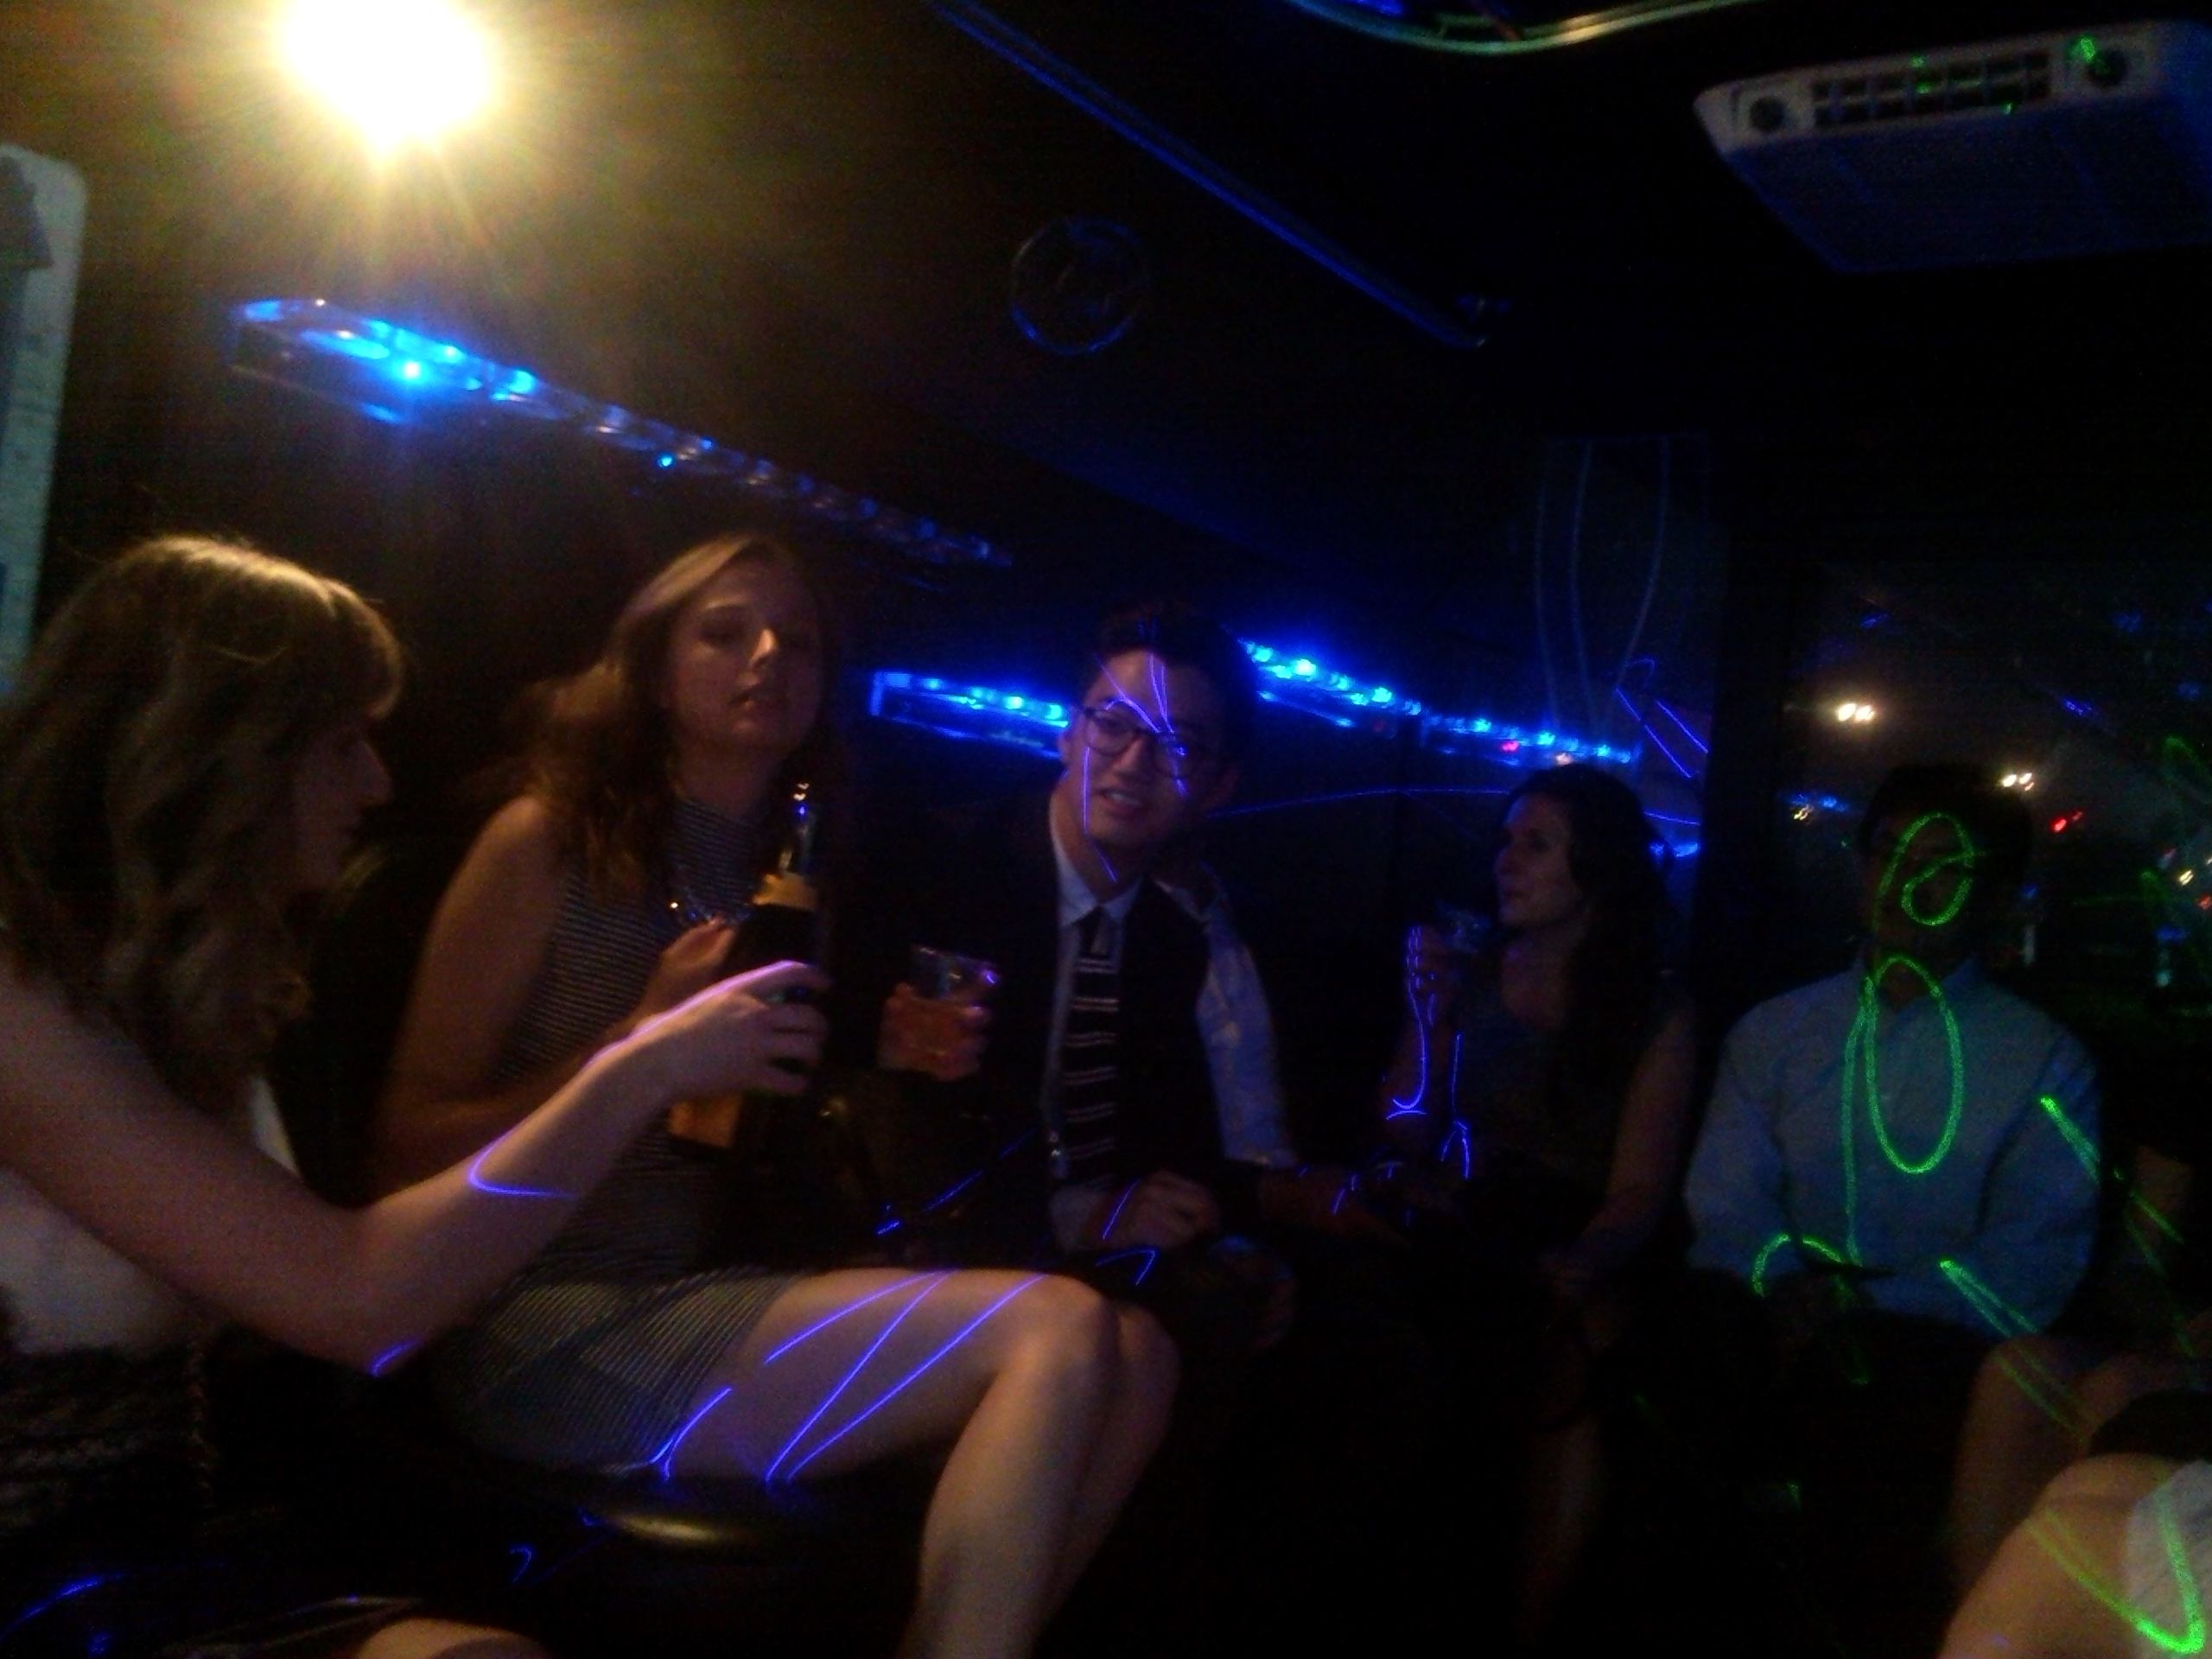 On the party bus - Jeff covered in frickin' lasers